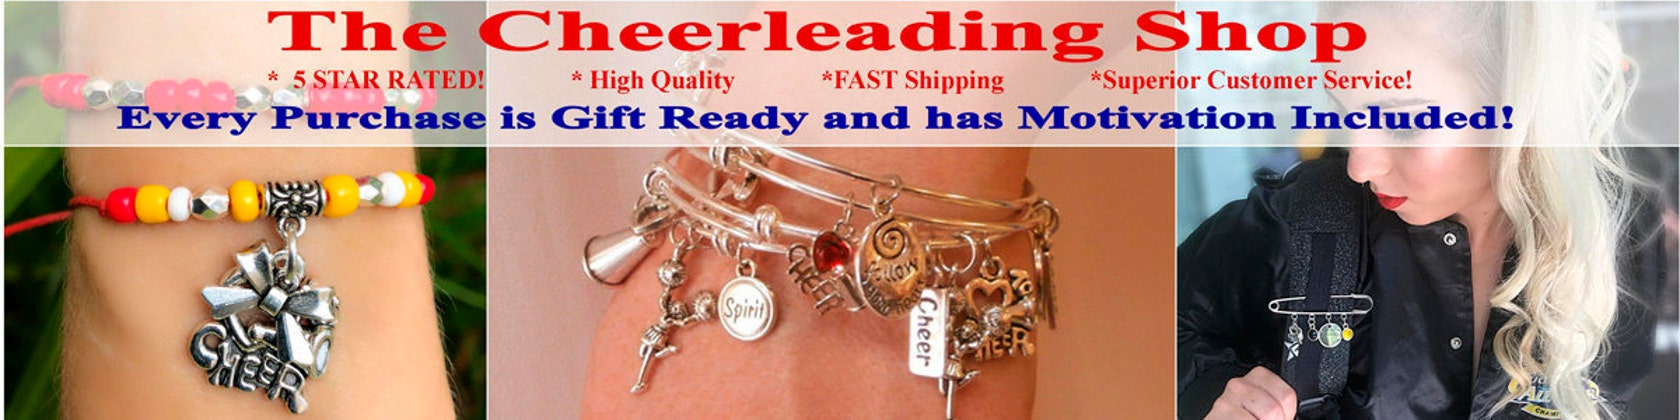 Cheerleading jewelry cheerleading gifts by thecheerleadingshop thecheerleadingshop fandeluxe